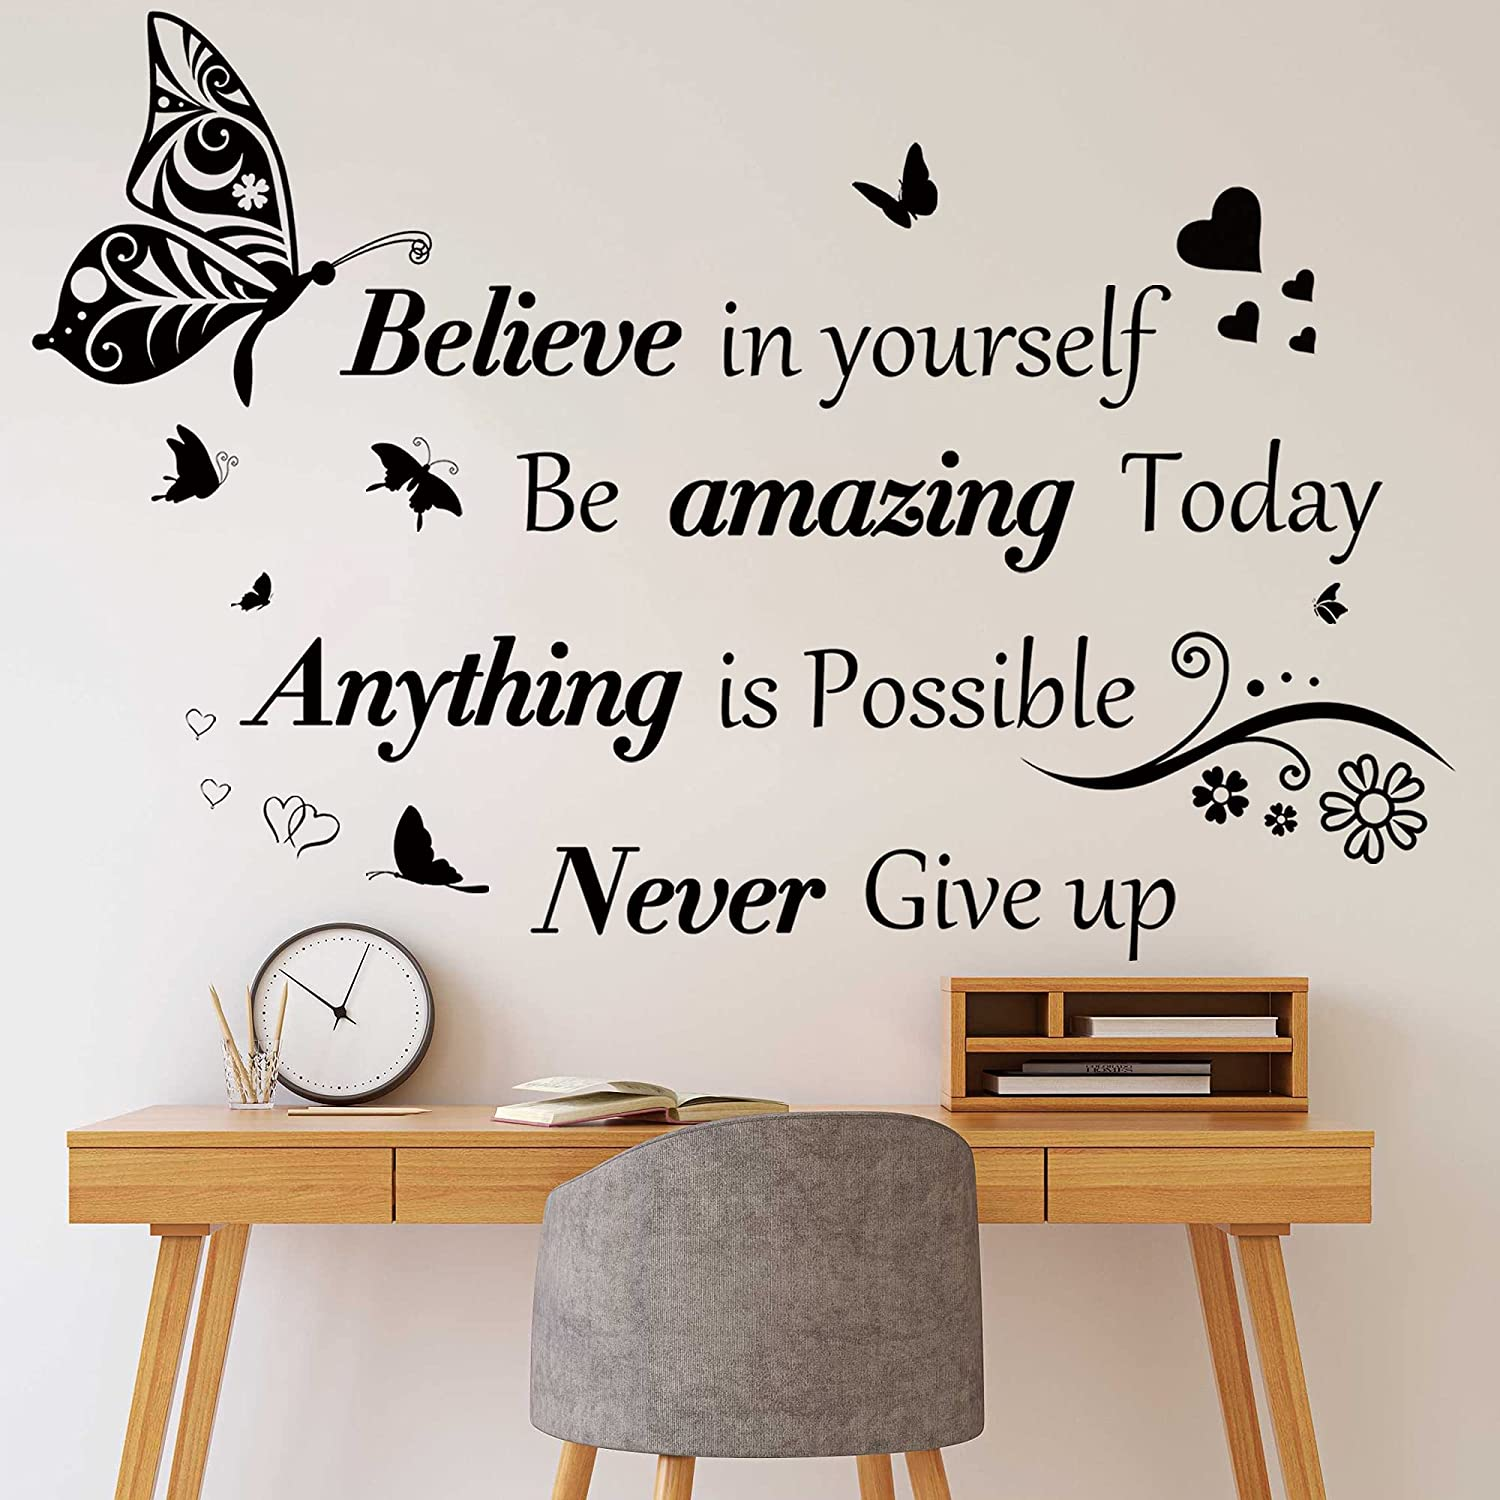 Inspirational Quotes Wall Decals Large Removable Motivational Saying Wall Stickers Positive Lettering Word Decal Butterfly Sticker Peel and Stick for Classroom Home Bedroom Family Office Wall Art Decor